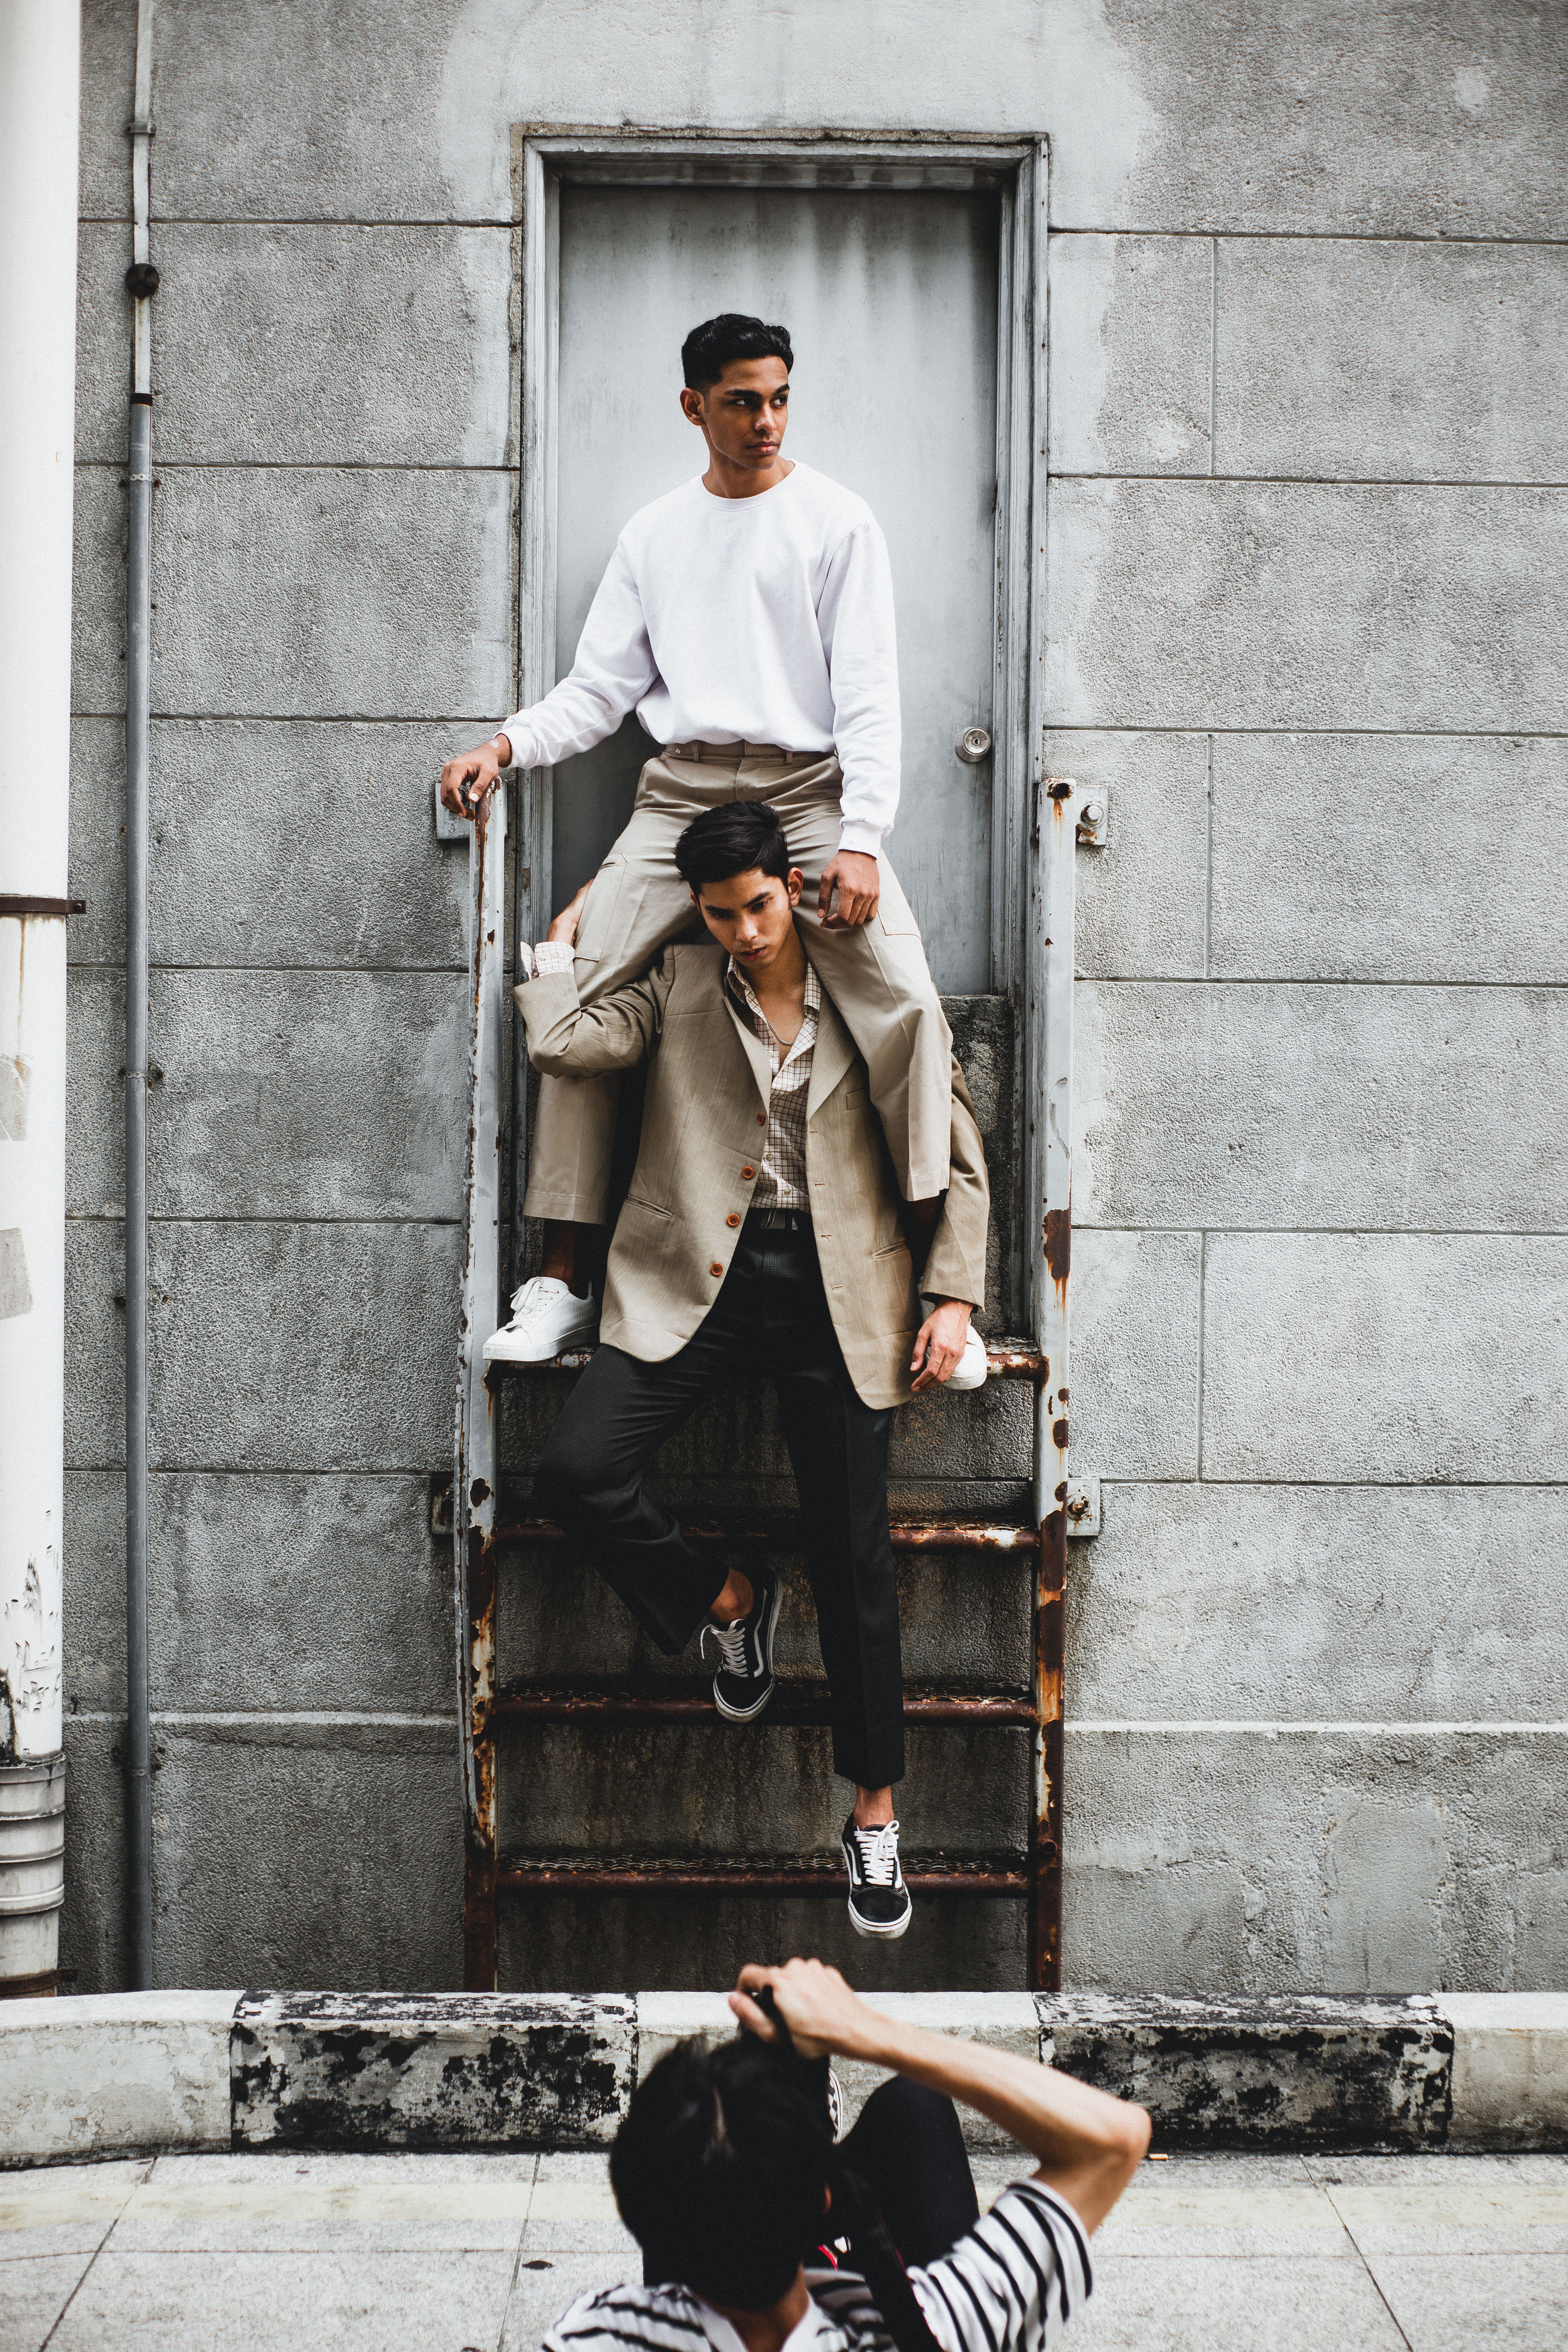 Photography of Man Carrying Another Man on Stairway